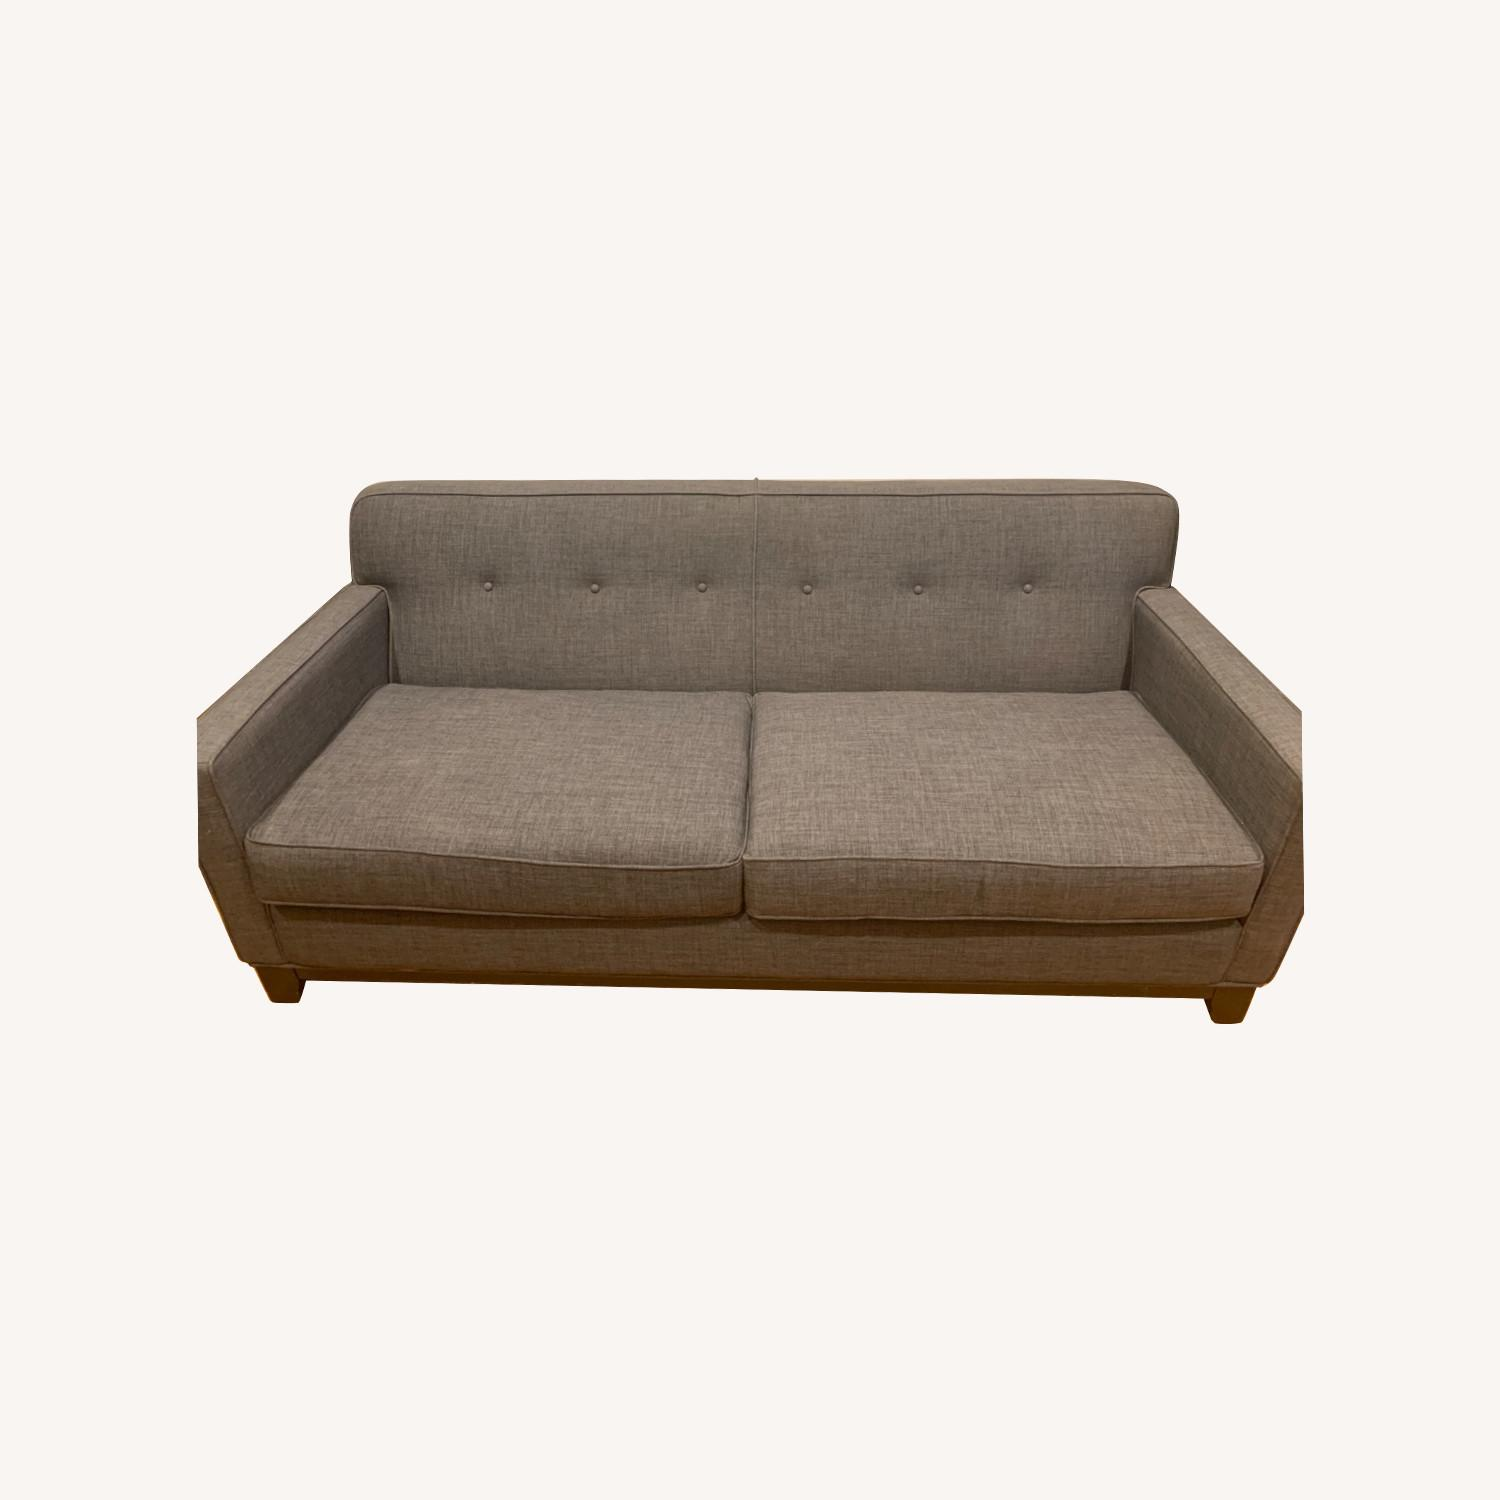 Raymour & Flanigan Mid Century Sofa/Couch - image-0